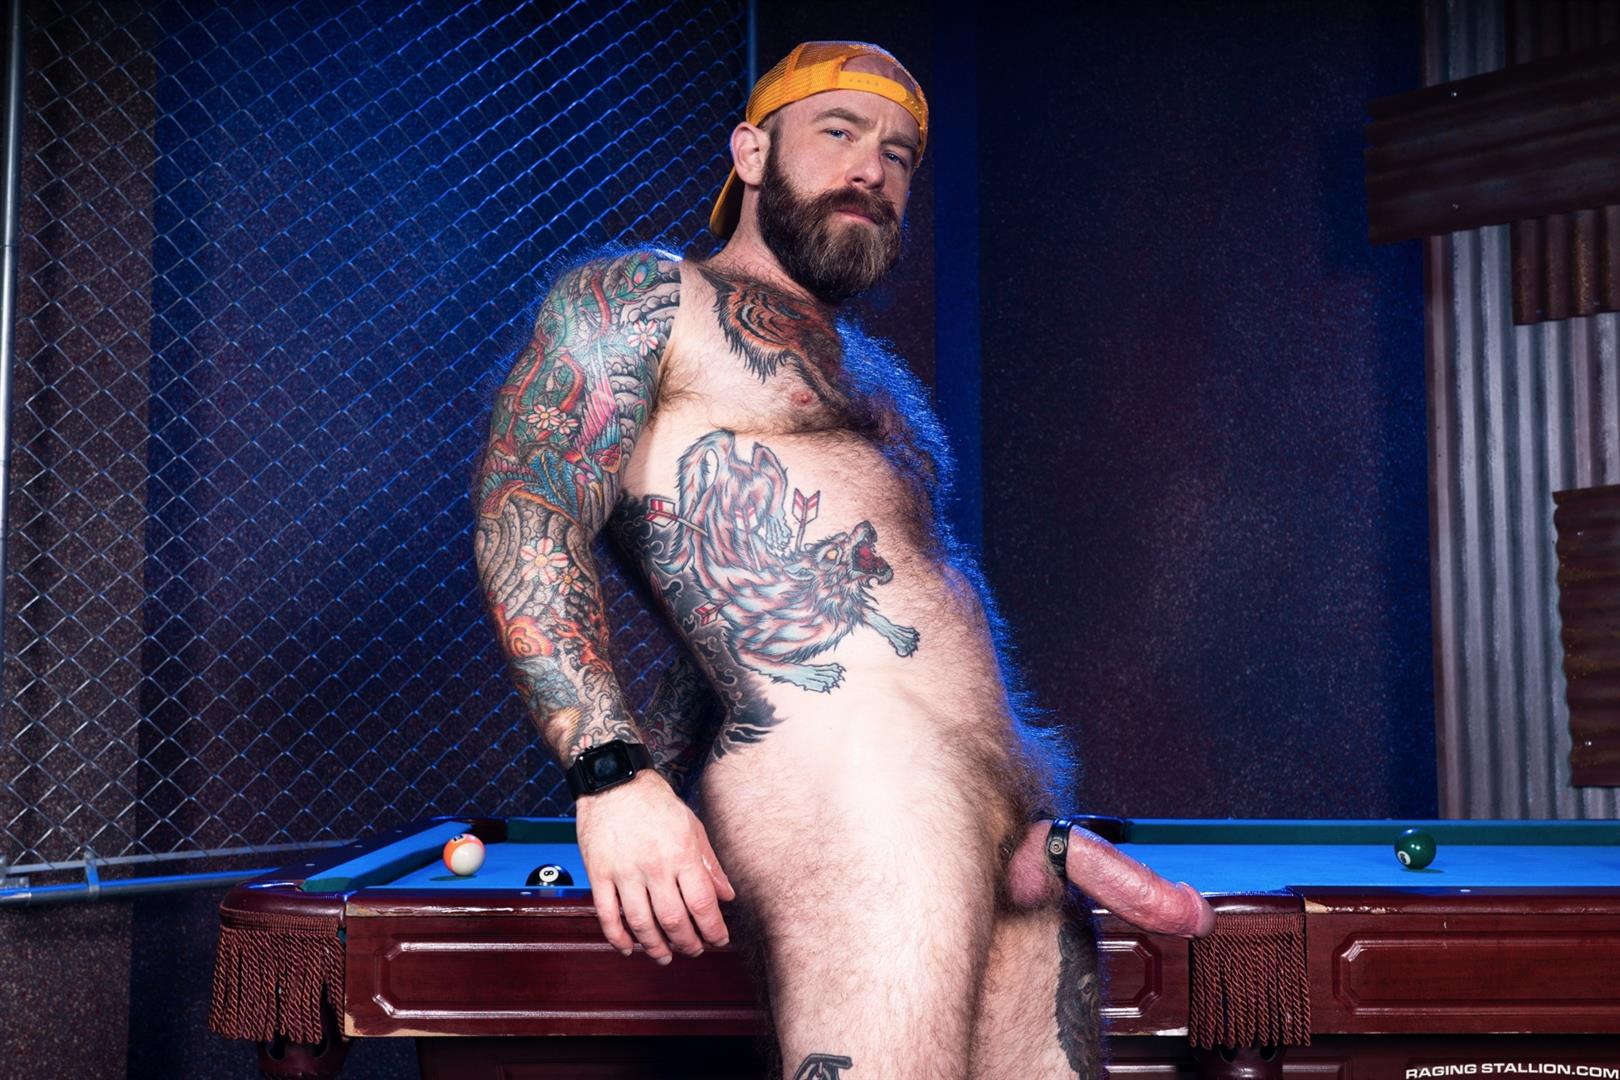 Raging-Stallion-Jay-Austin-and-Jack-Dixon-Thick-Dick-Hairy-Daddy-Getting-Cock-Sucked-06 Hairy Daddy Jack Dixon Gets His Thick Cock Sucked At A Seedy Back Bar